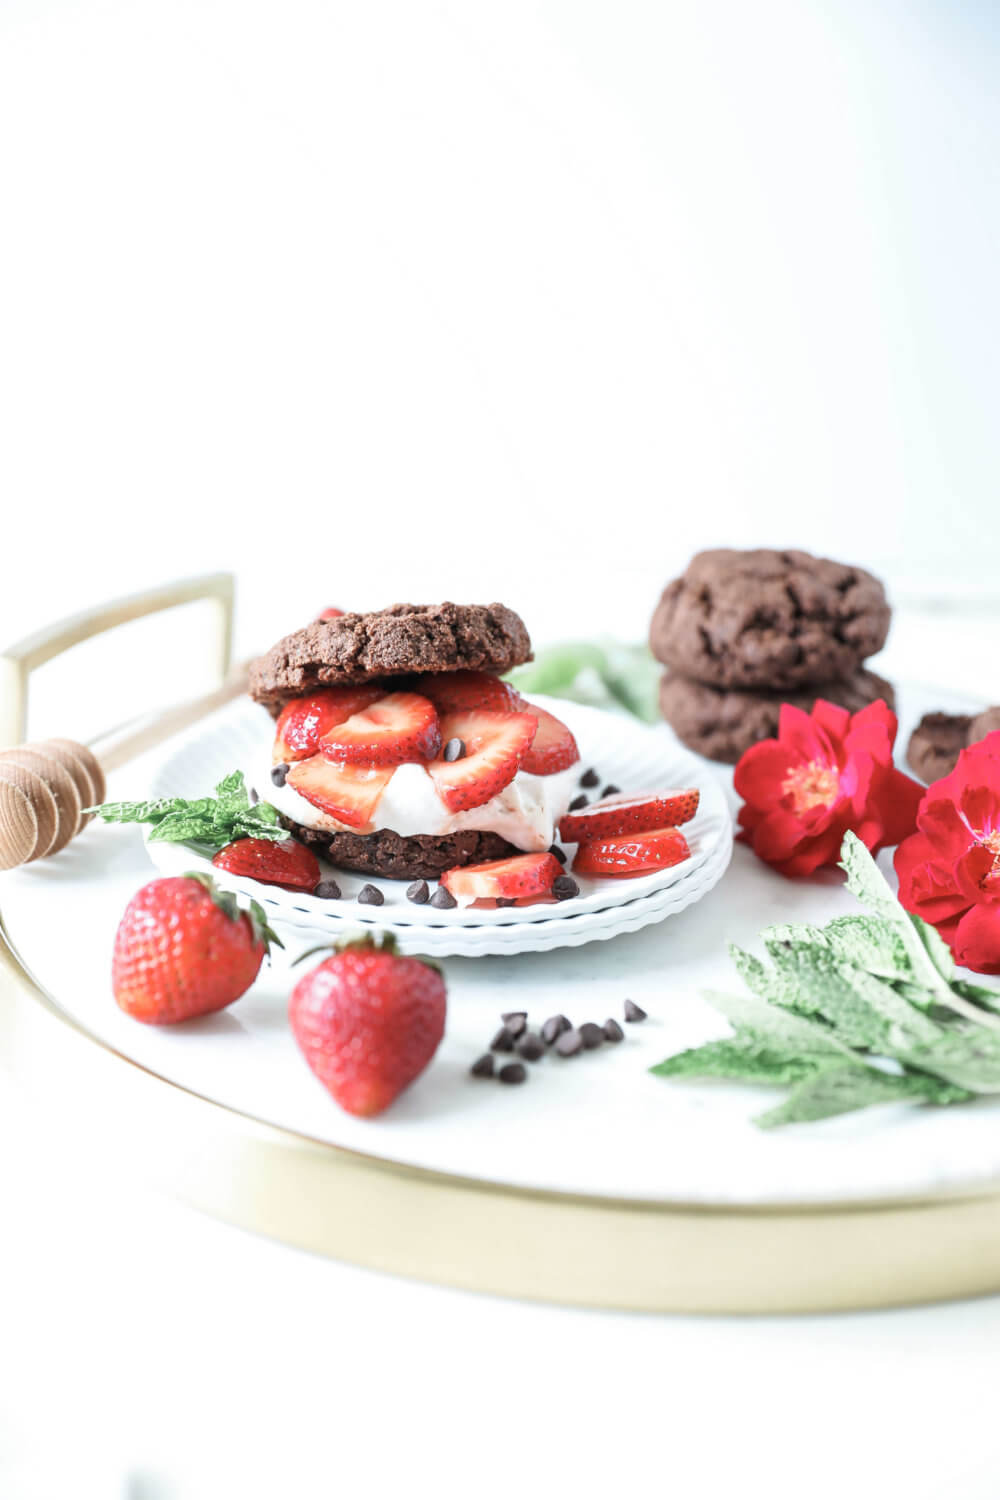 Grain-free, Vegan Chocolate Strawberry Shortcake - Jessi's Kitchen